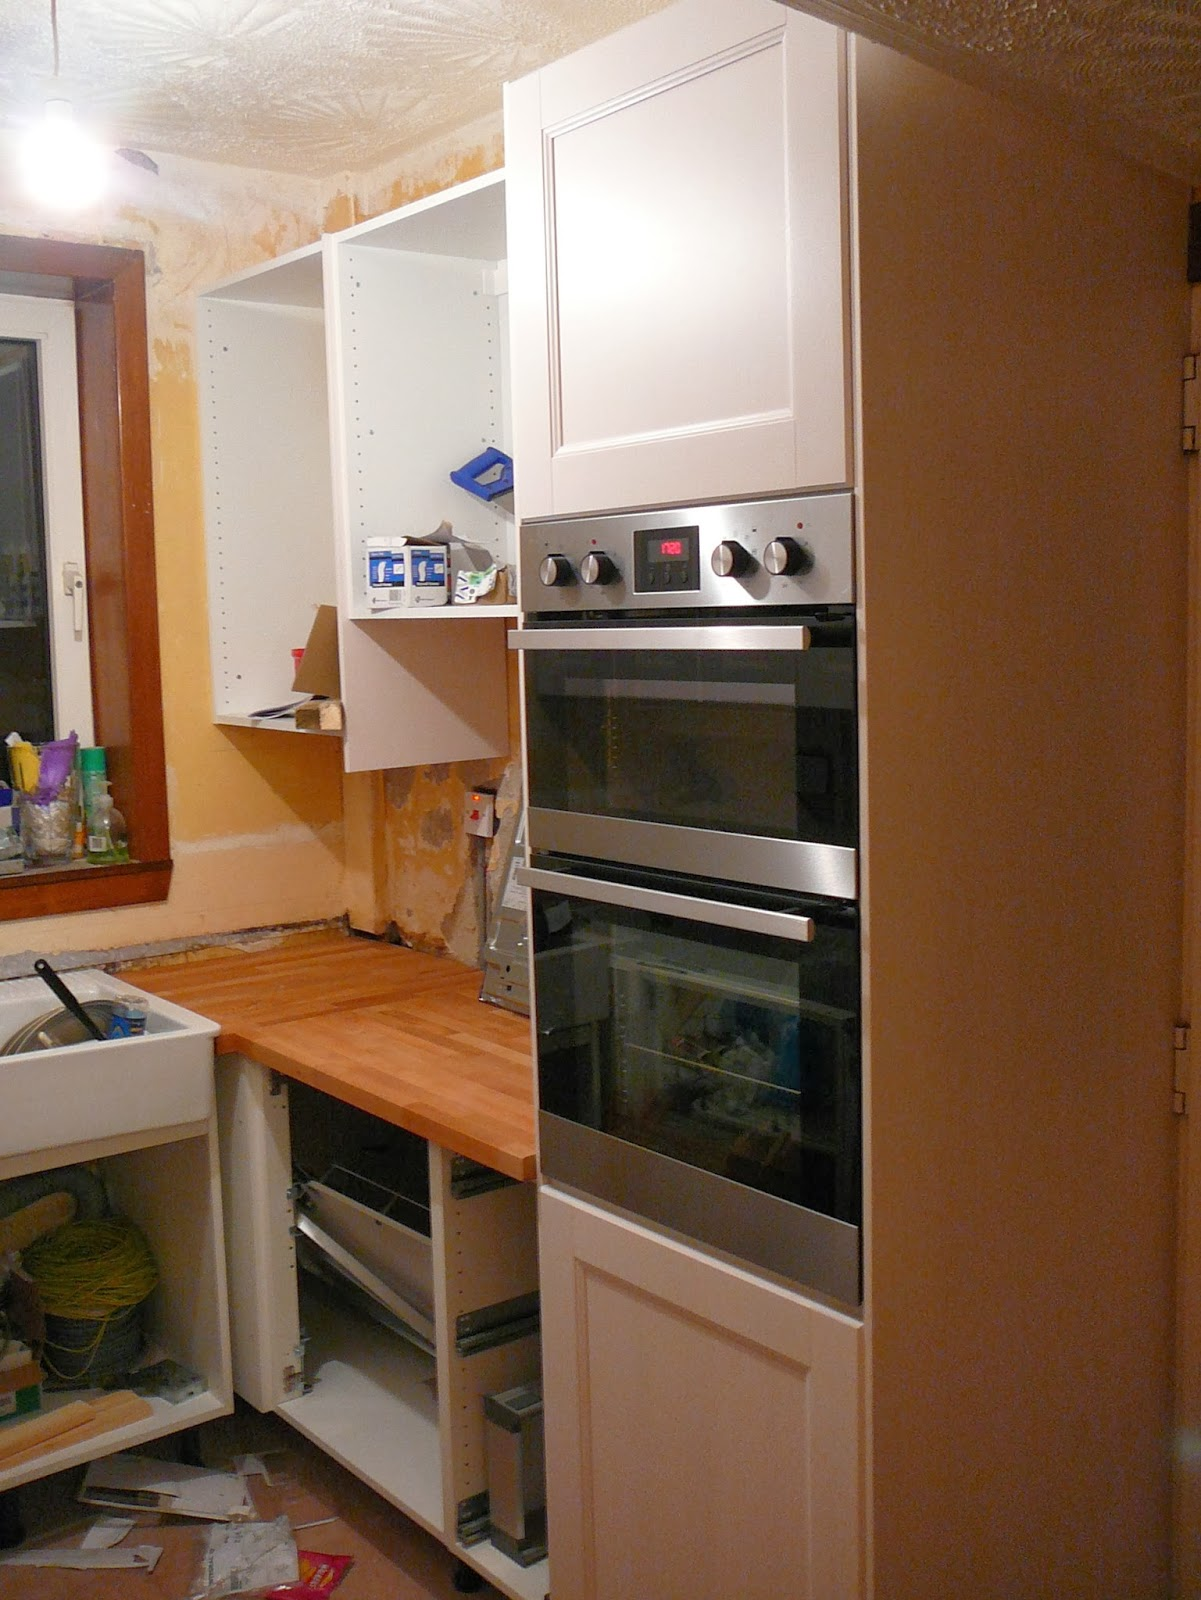 Ikea Wall Storage Units Dae It Yersel: The New Kitchen - Part 2: The Fitting